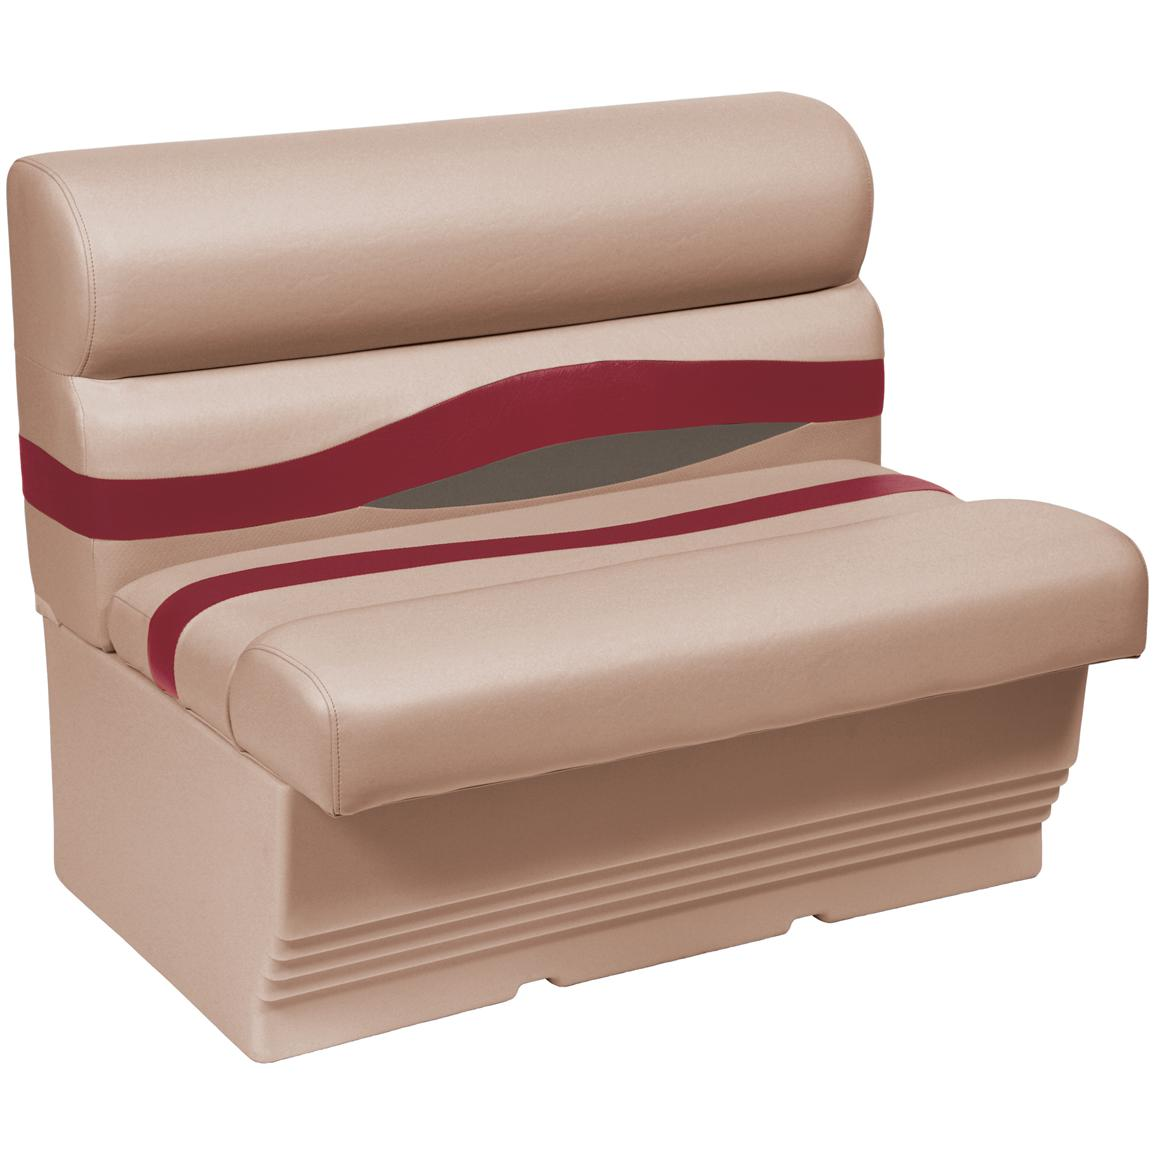 Wise® Premier 1100 Series 27 inch Pontoon Bench Seat, Color E